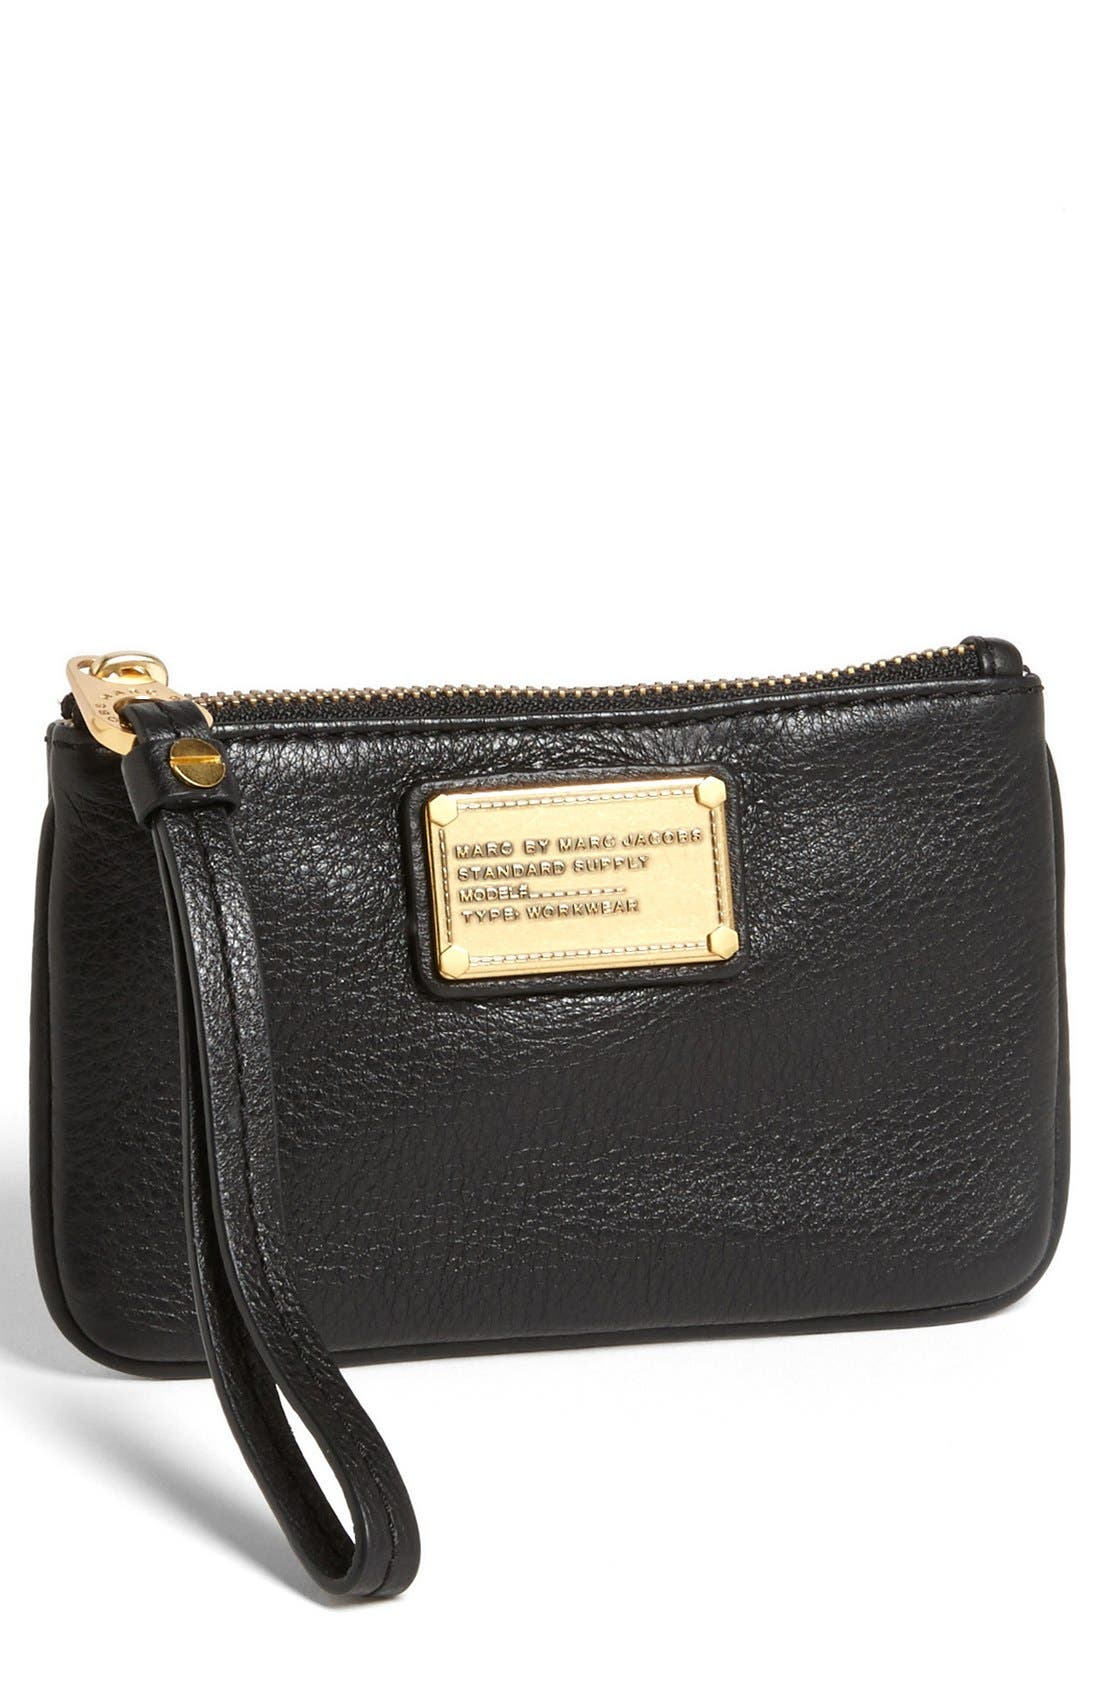 "Alternate Image 1 Selected - MARC BY MARC JACOBS 'Small Classic Q"" Wristlet"